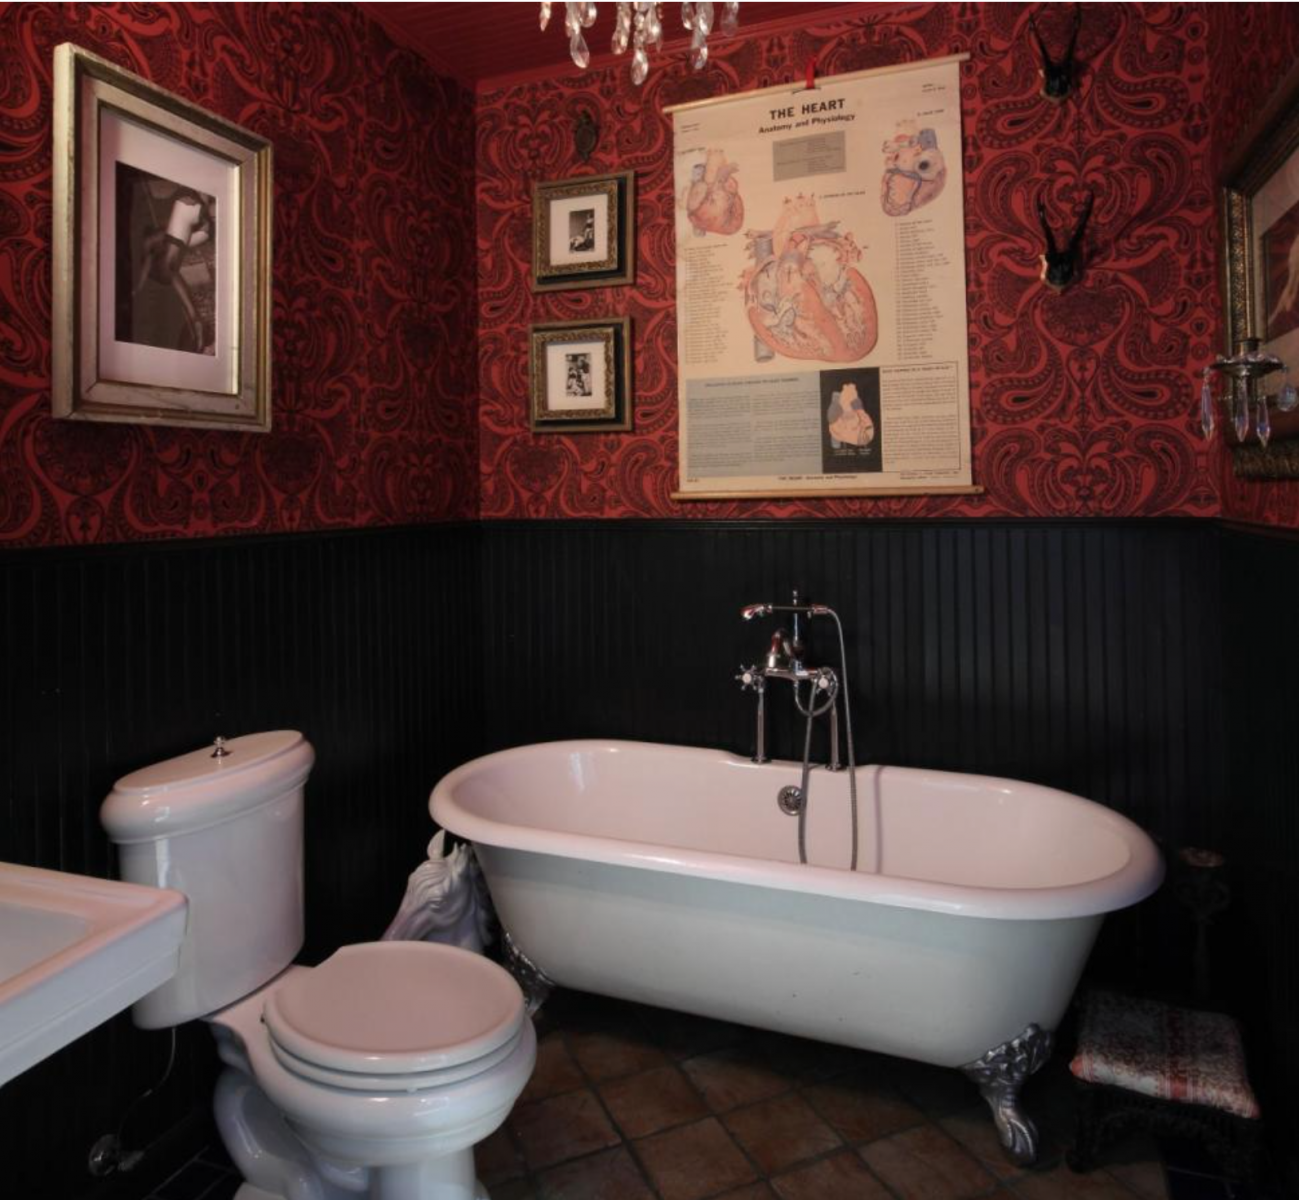 The apartment has two bathrooms, one of which resembles a Moulin Rouge set with deep red hues and a chandelier.